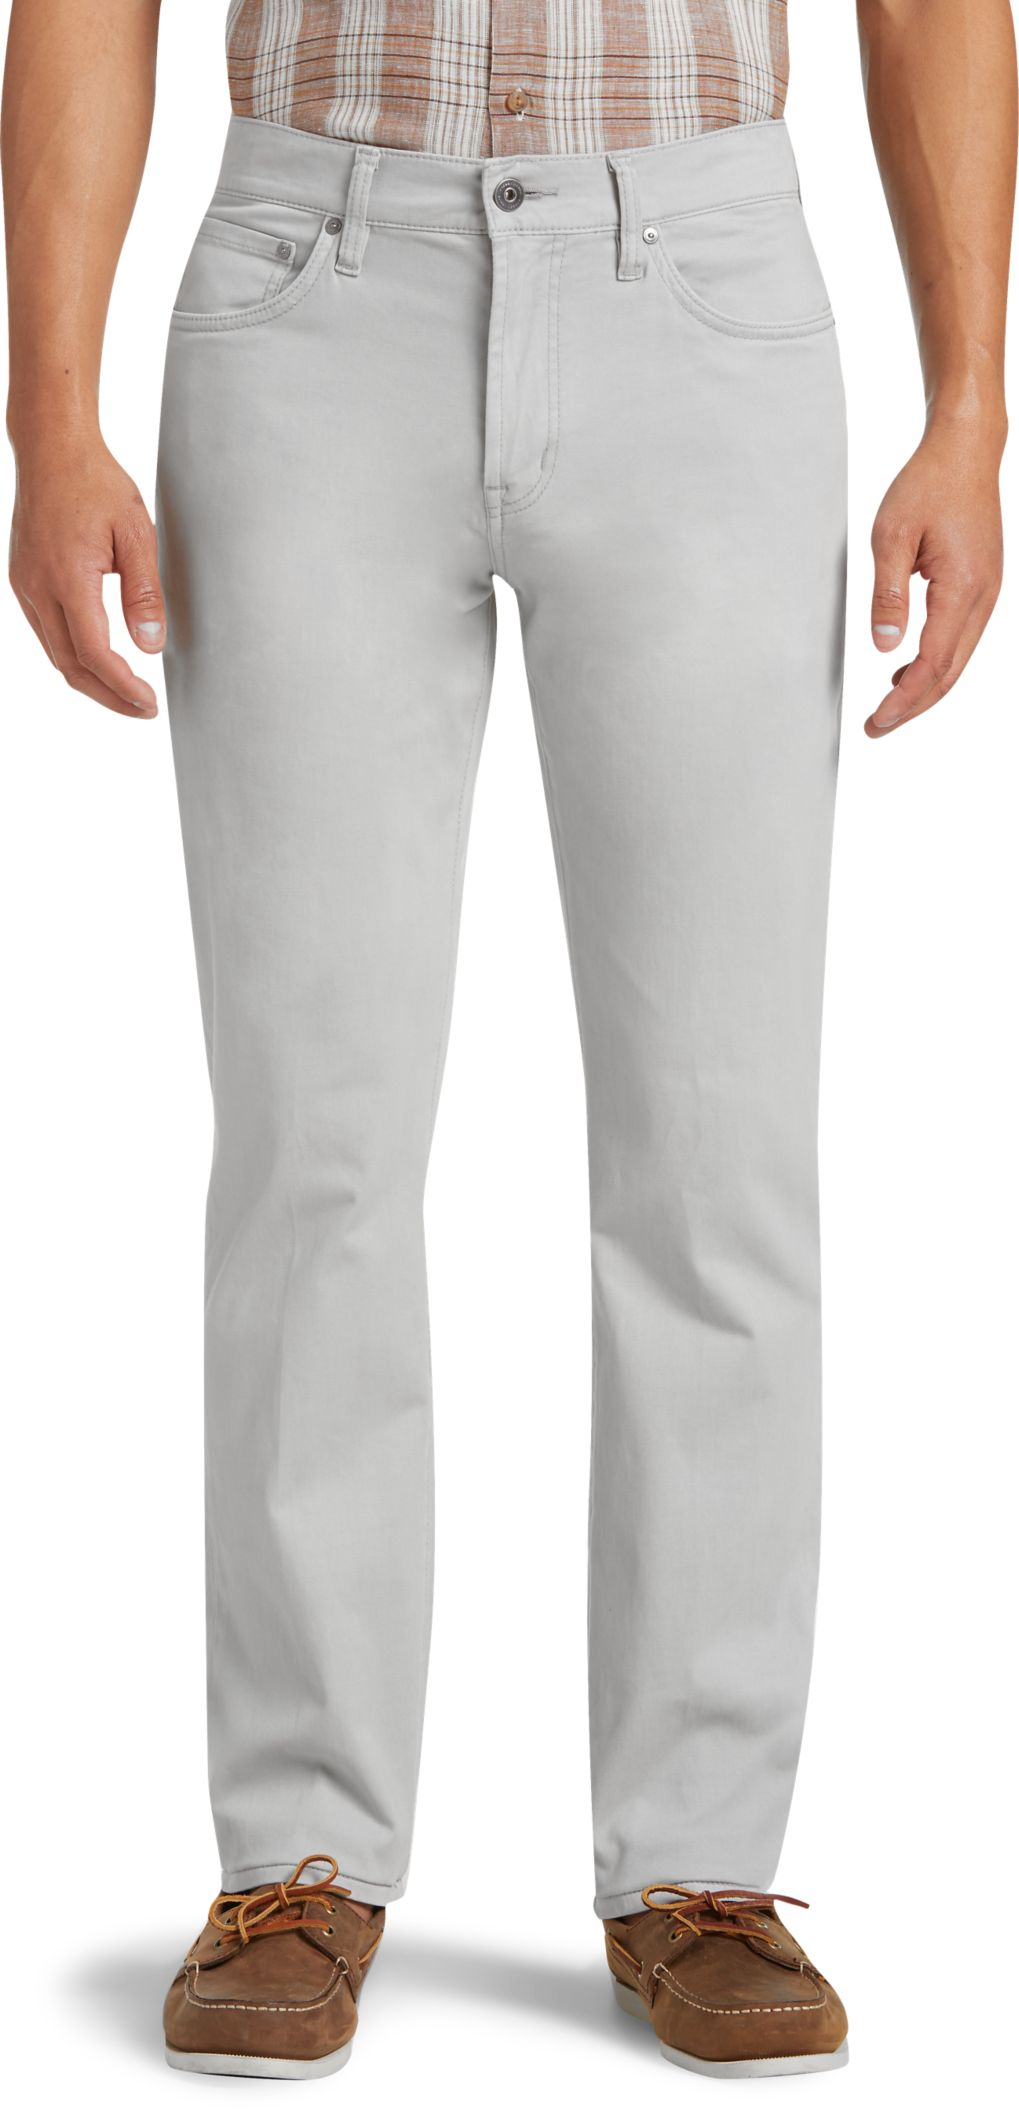 Joseph Abboud Classic Fit Casual Pants